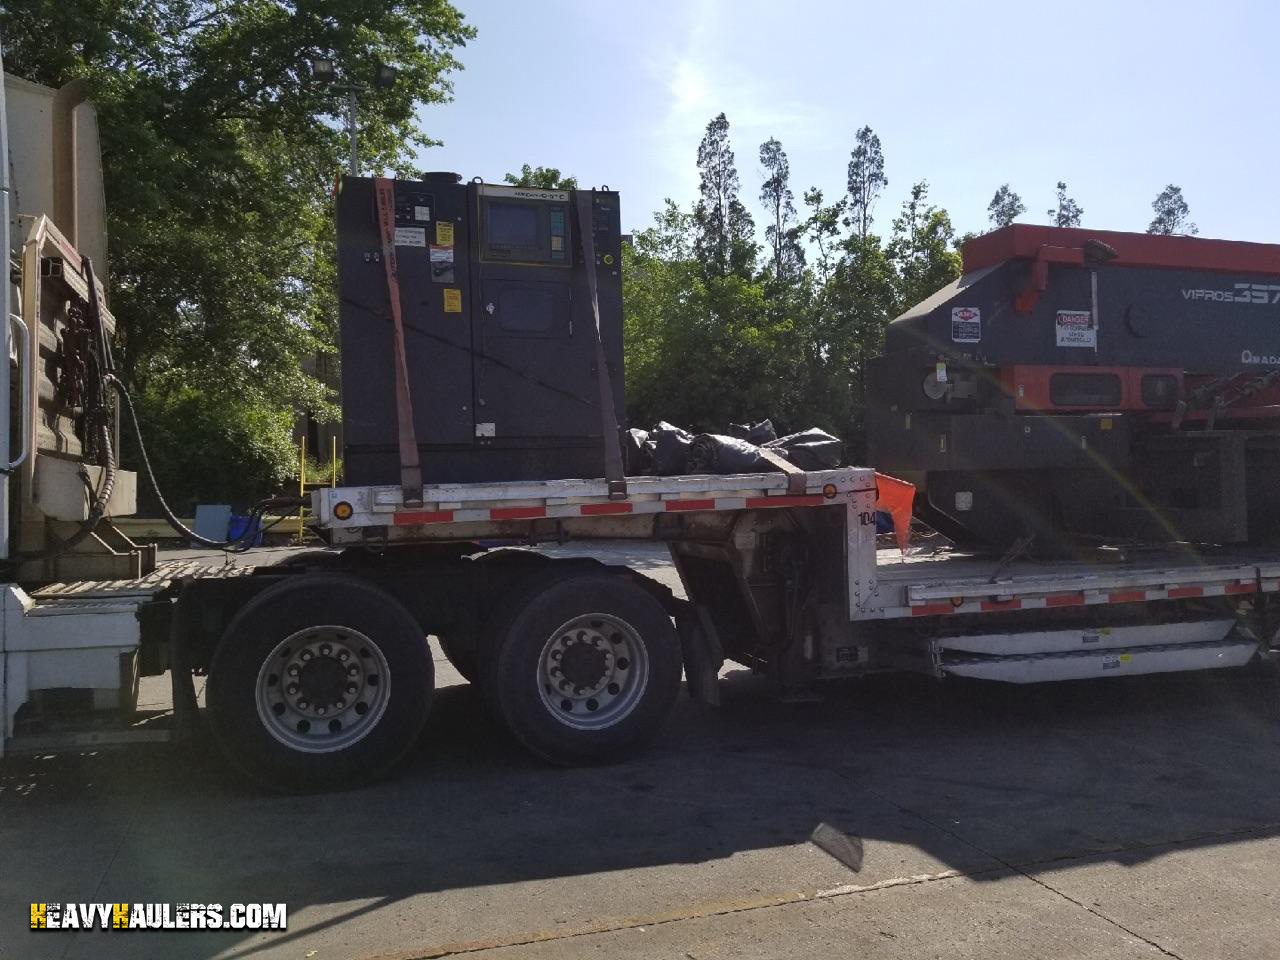 A turret press being transported